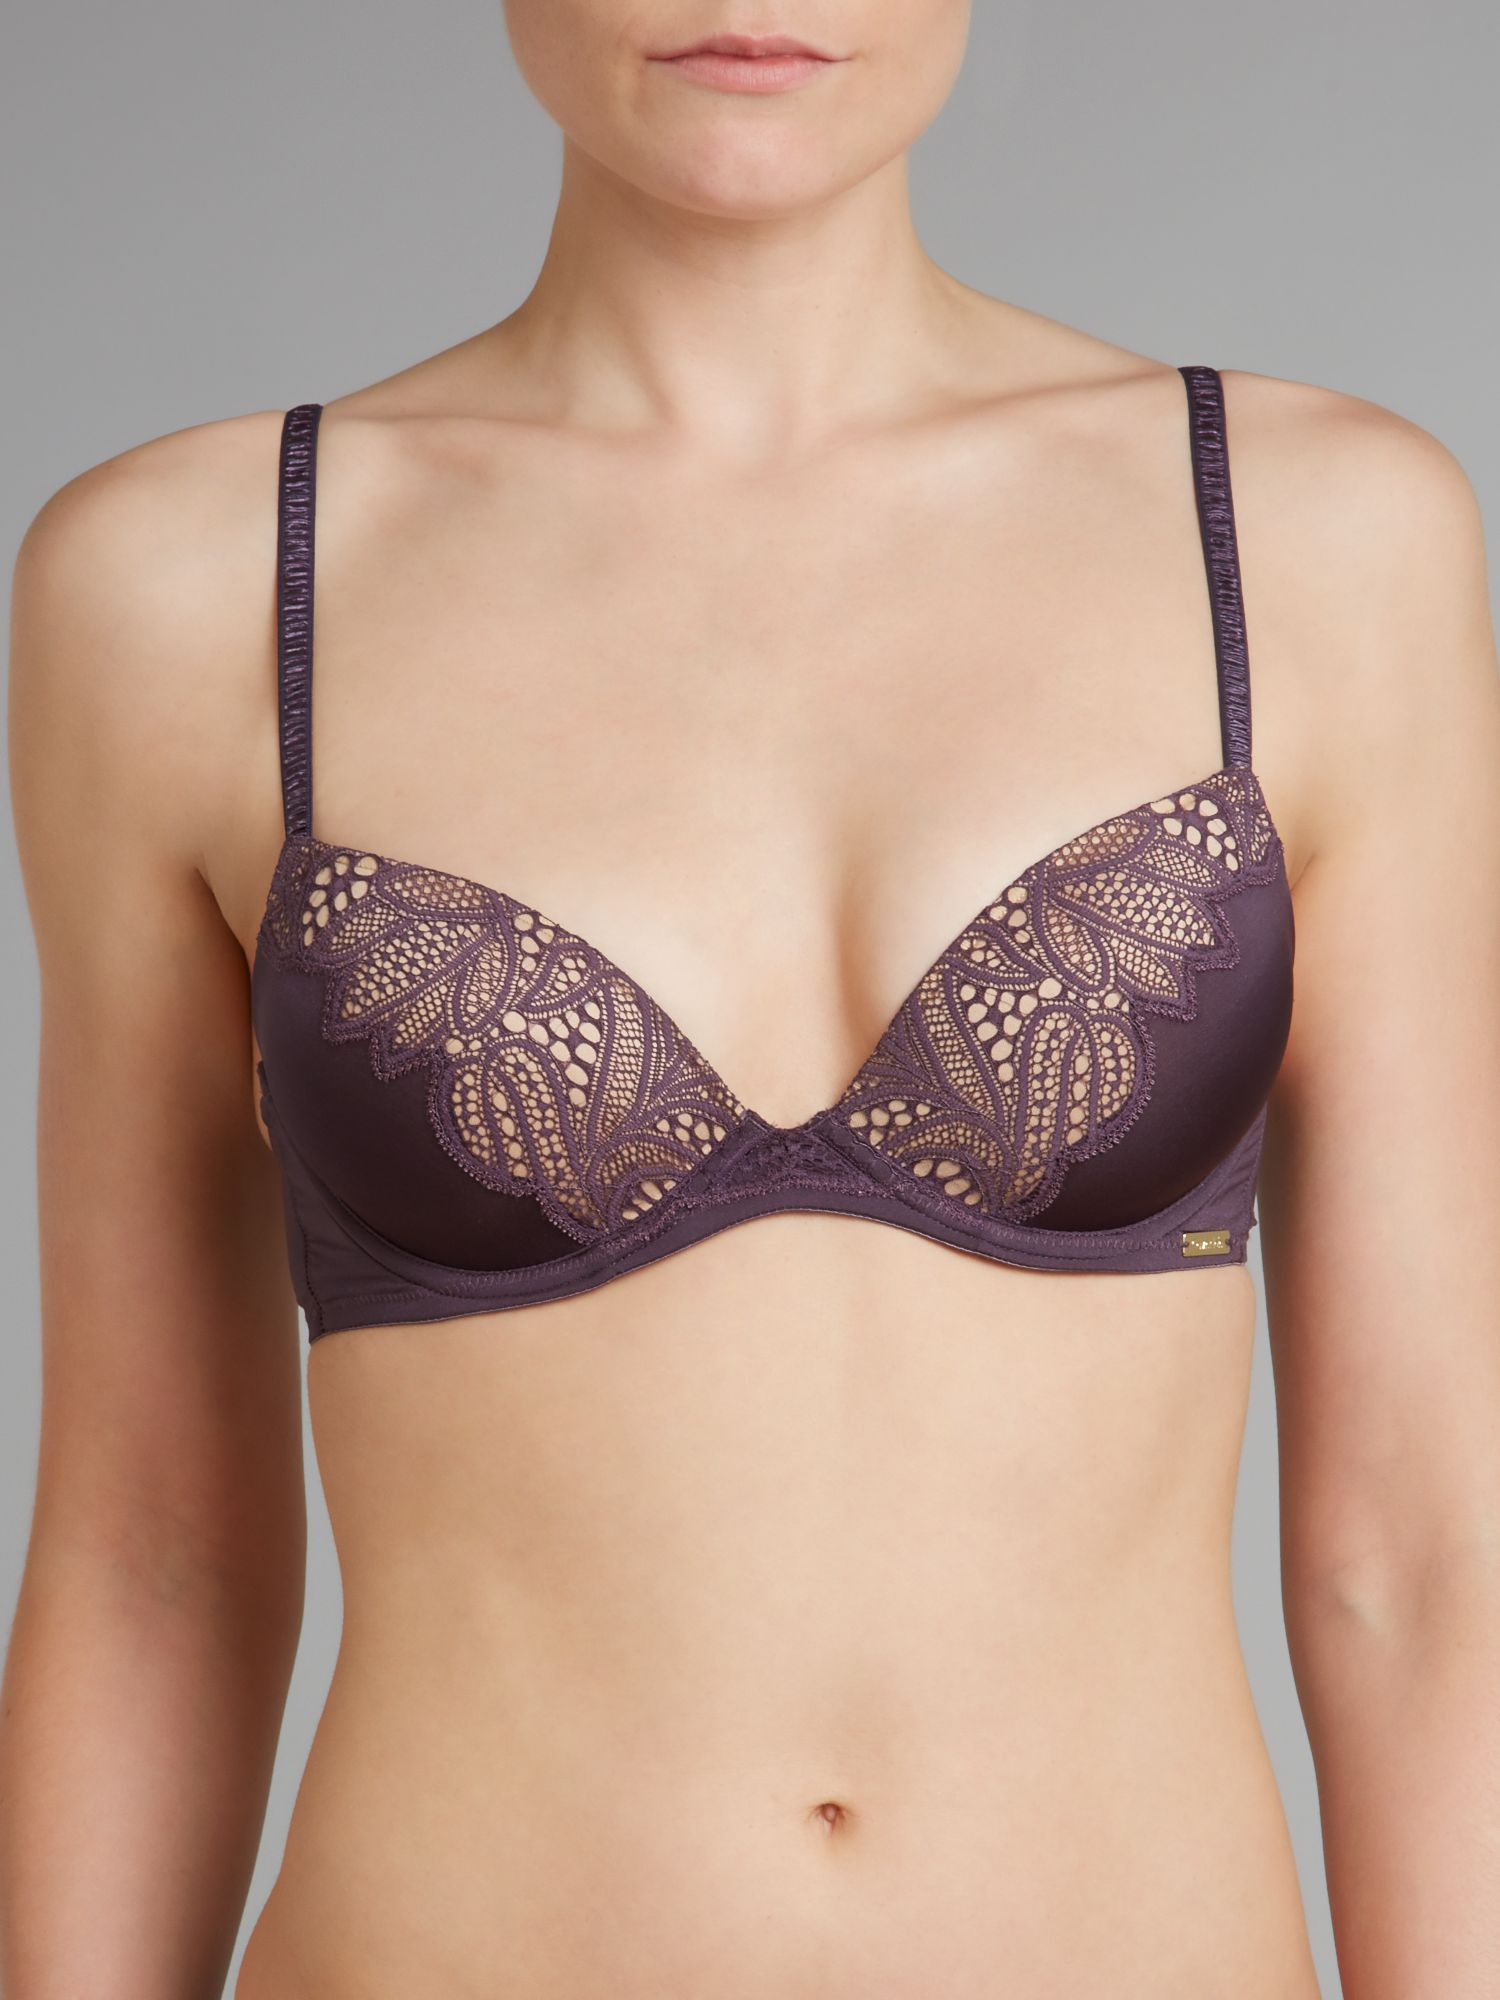 Harem customized lift bra